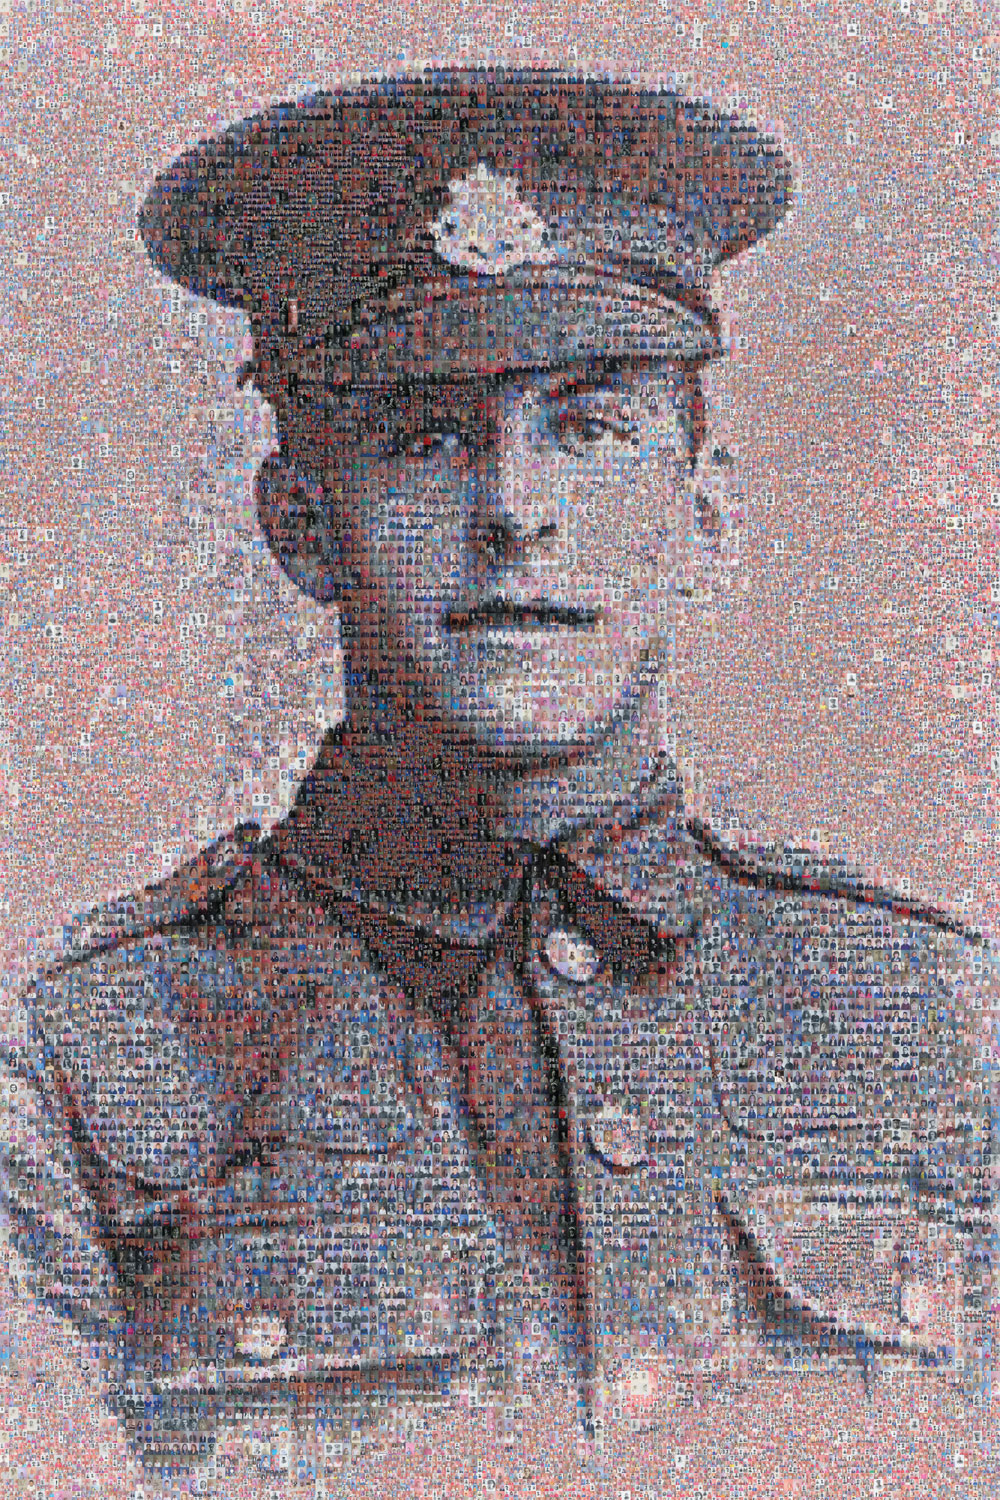 the-face-of-ww1-portrait-gallery-009